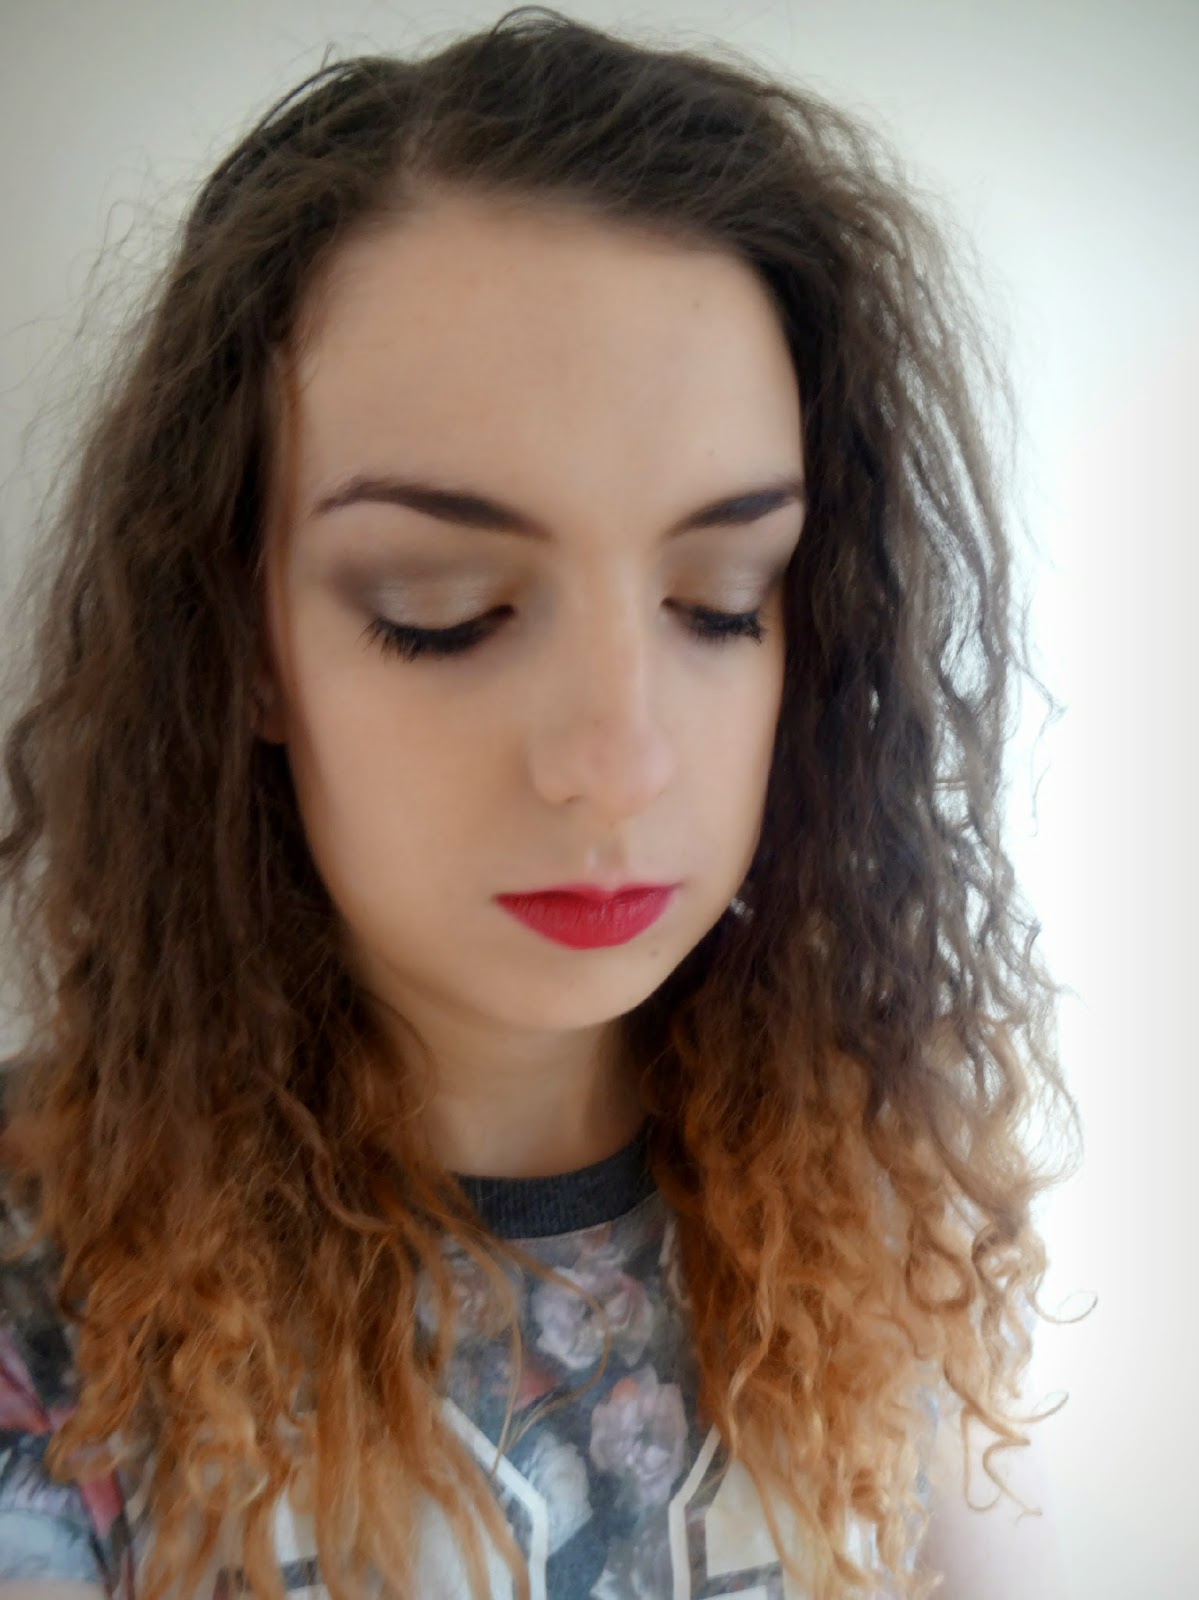 Easy Makeup Look Using the Naked 2 Palette